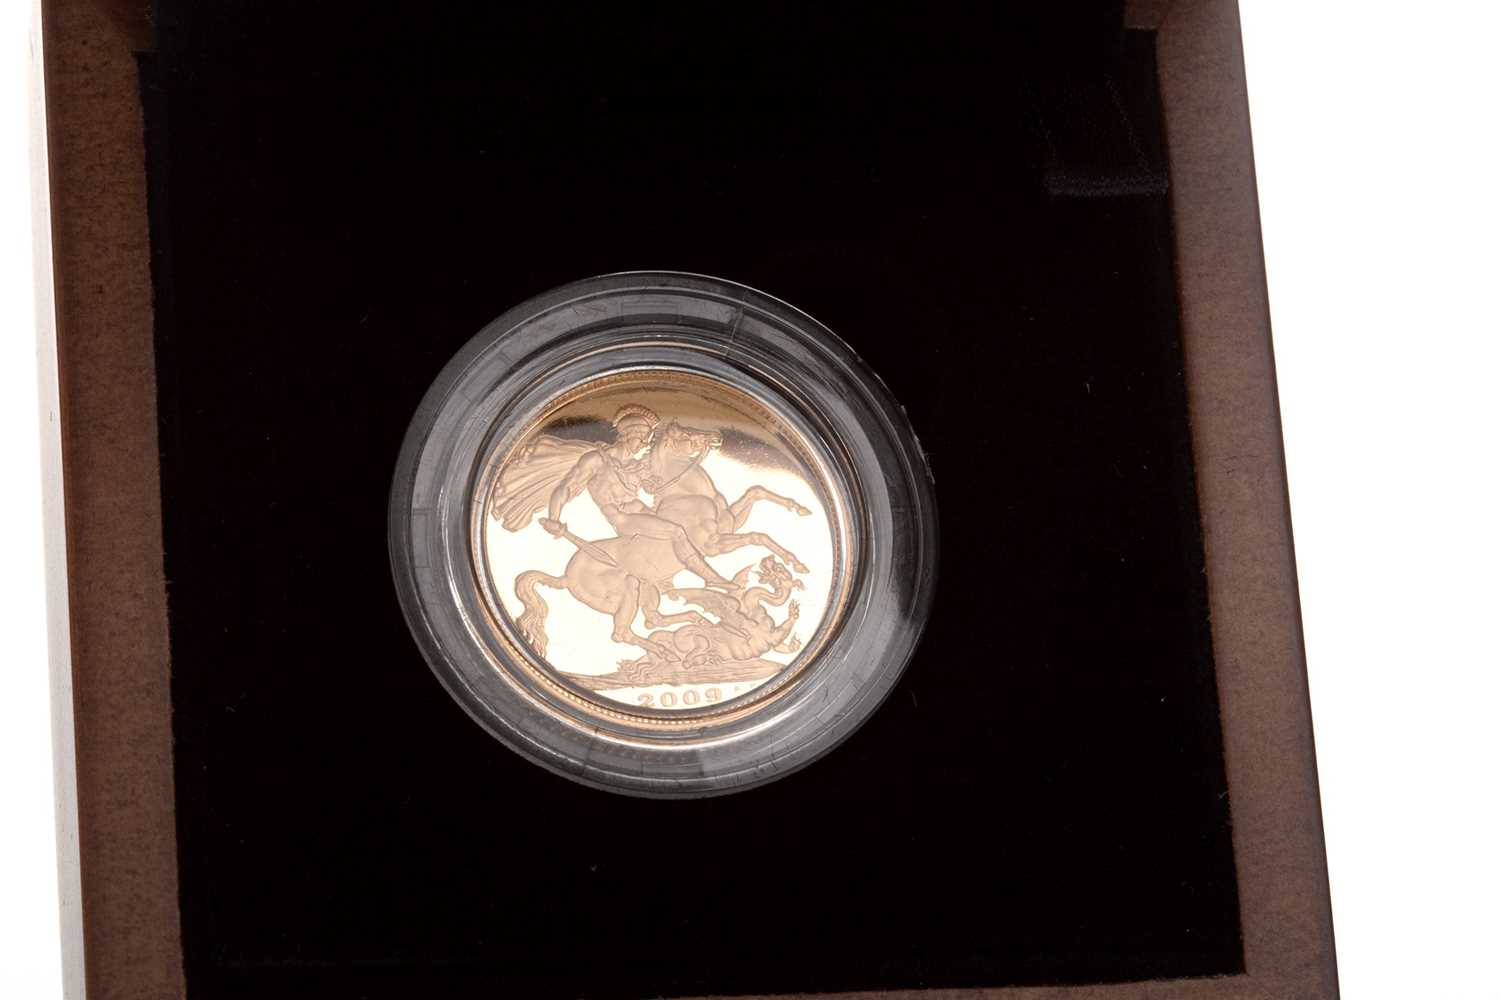 Lot 21-A THE ROYAL MINT GOLD SOVEREIGN, 2009